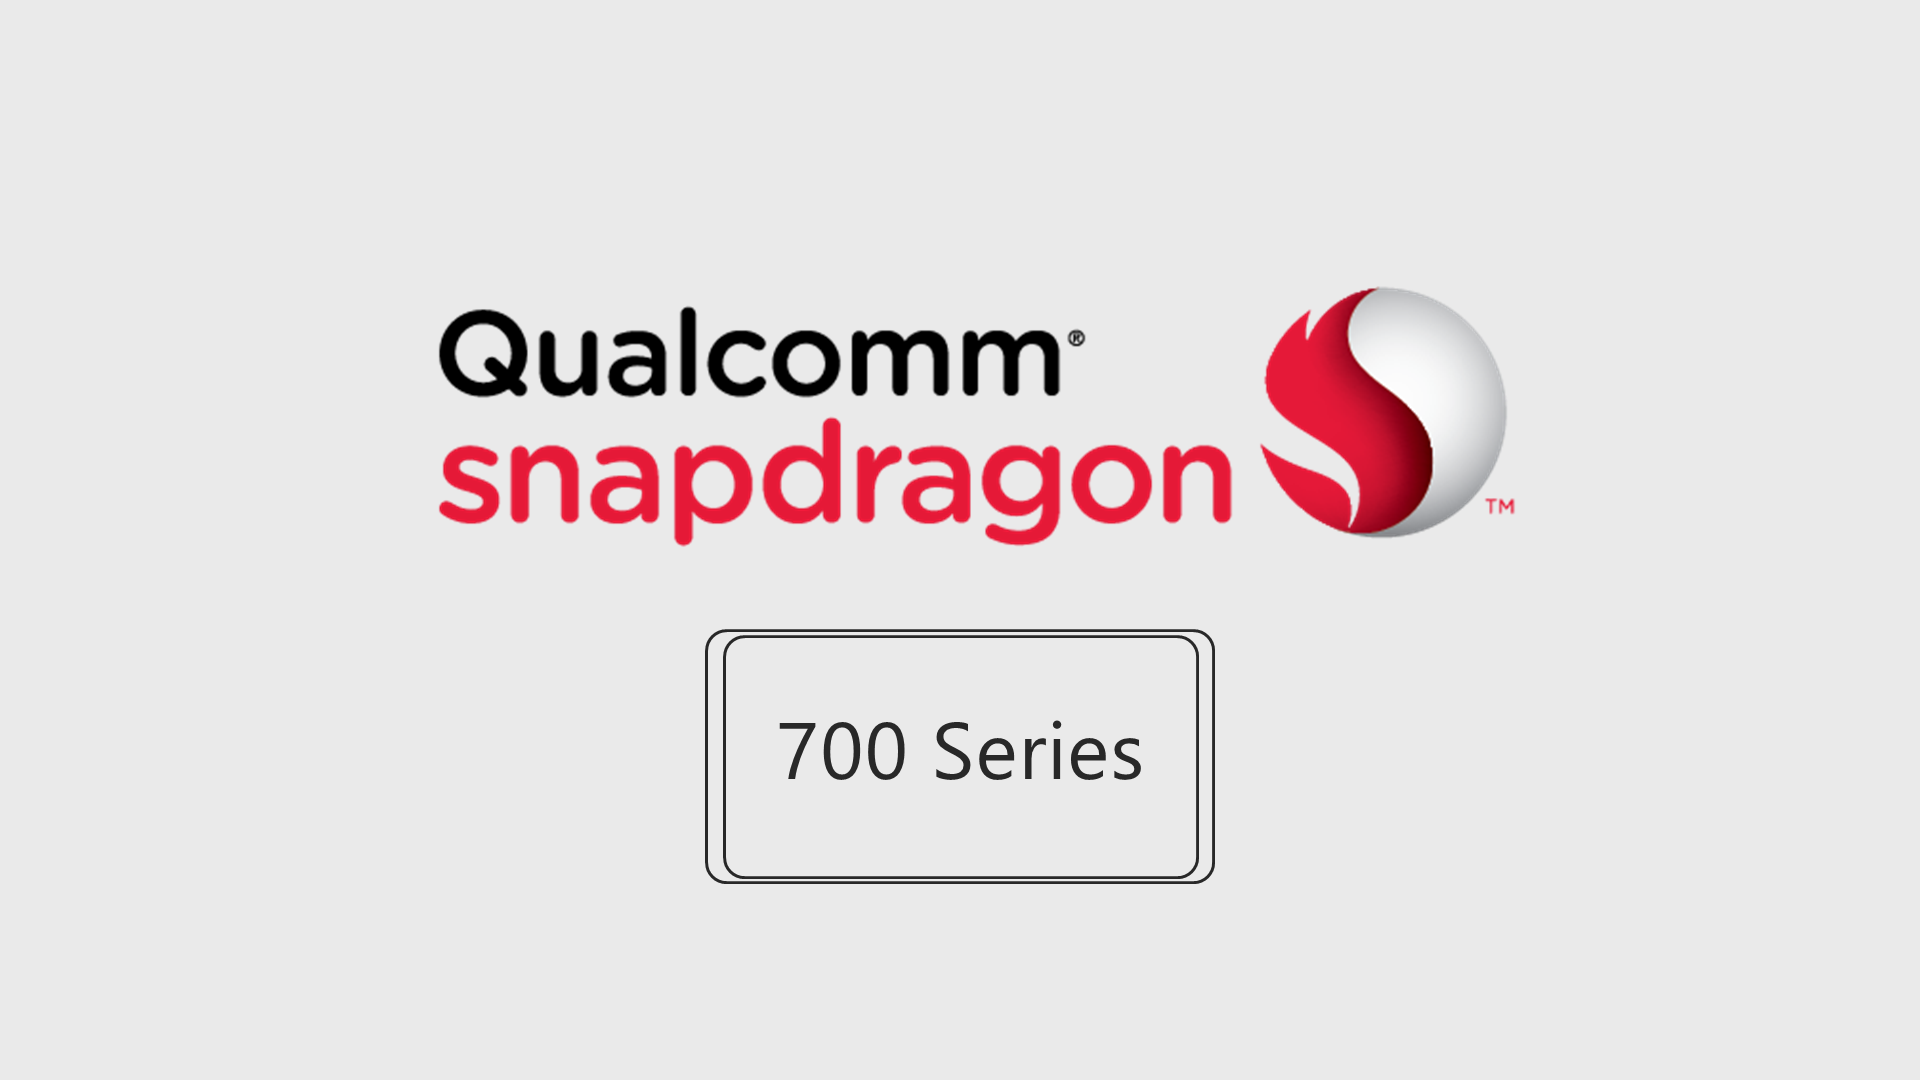 Qualcomm Announced Snapdragon 700 Series